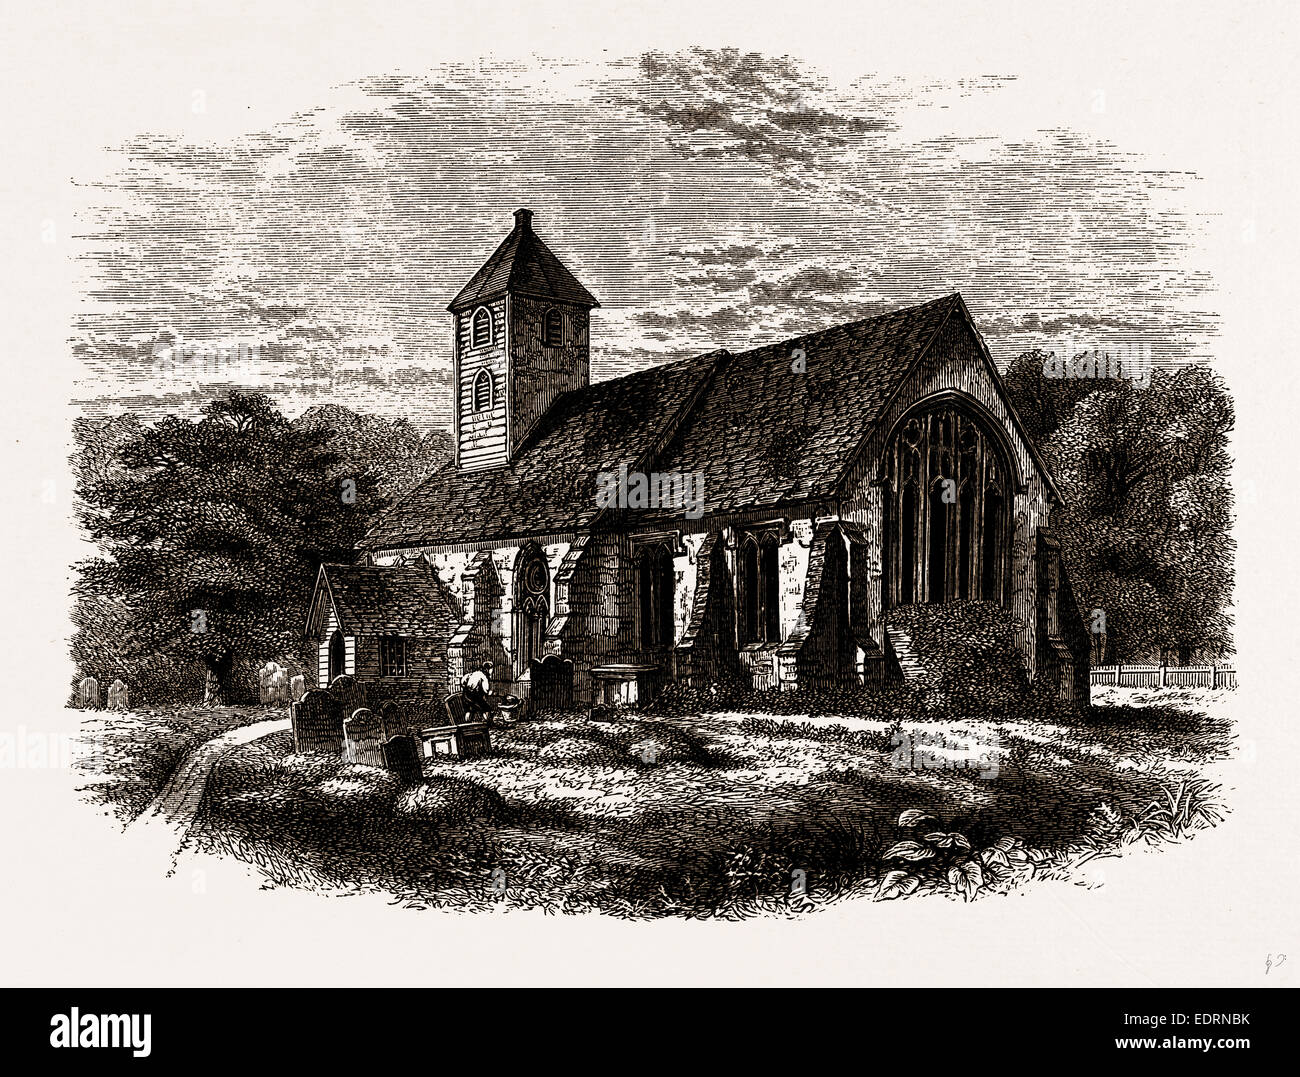 OLD HANWORTH CHURCH, a Print published 1795 - Stock Image